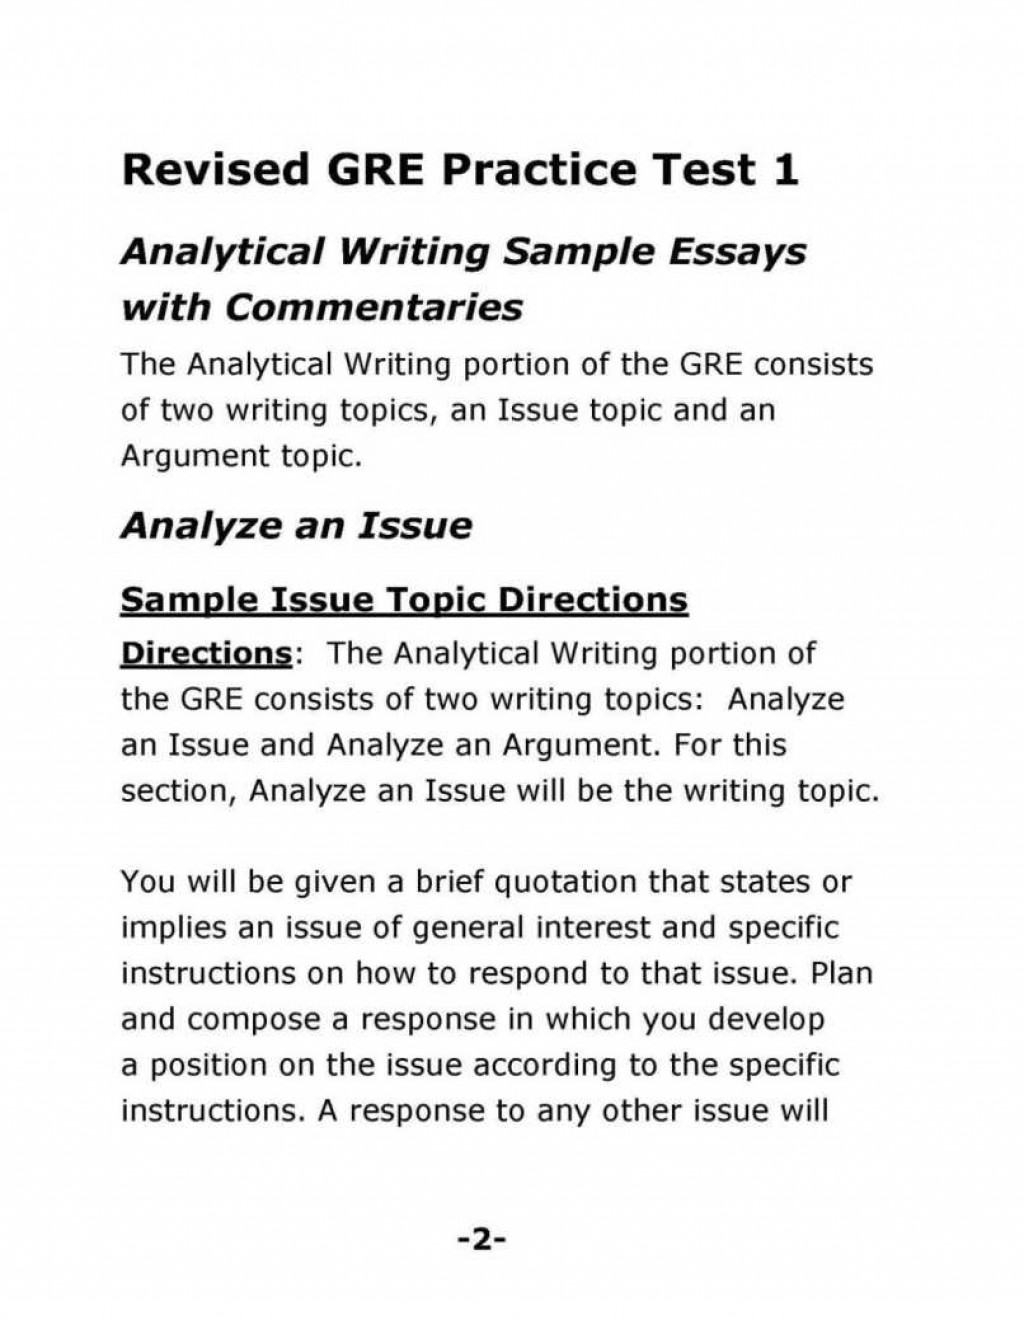 004 Essay Example Gre Argumentemplate Howo Write Formatted Resume Sampleest Papers With Soluti Samples Length Rhesus Monkey Questions Score Pool Prompt Frightening Argument Template Large